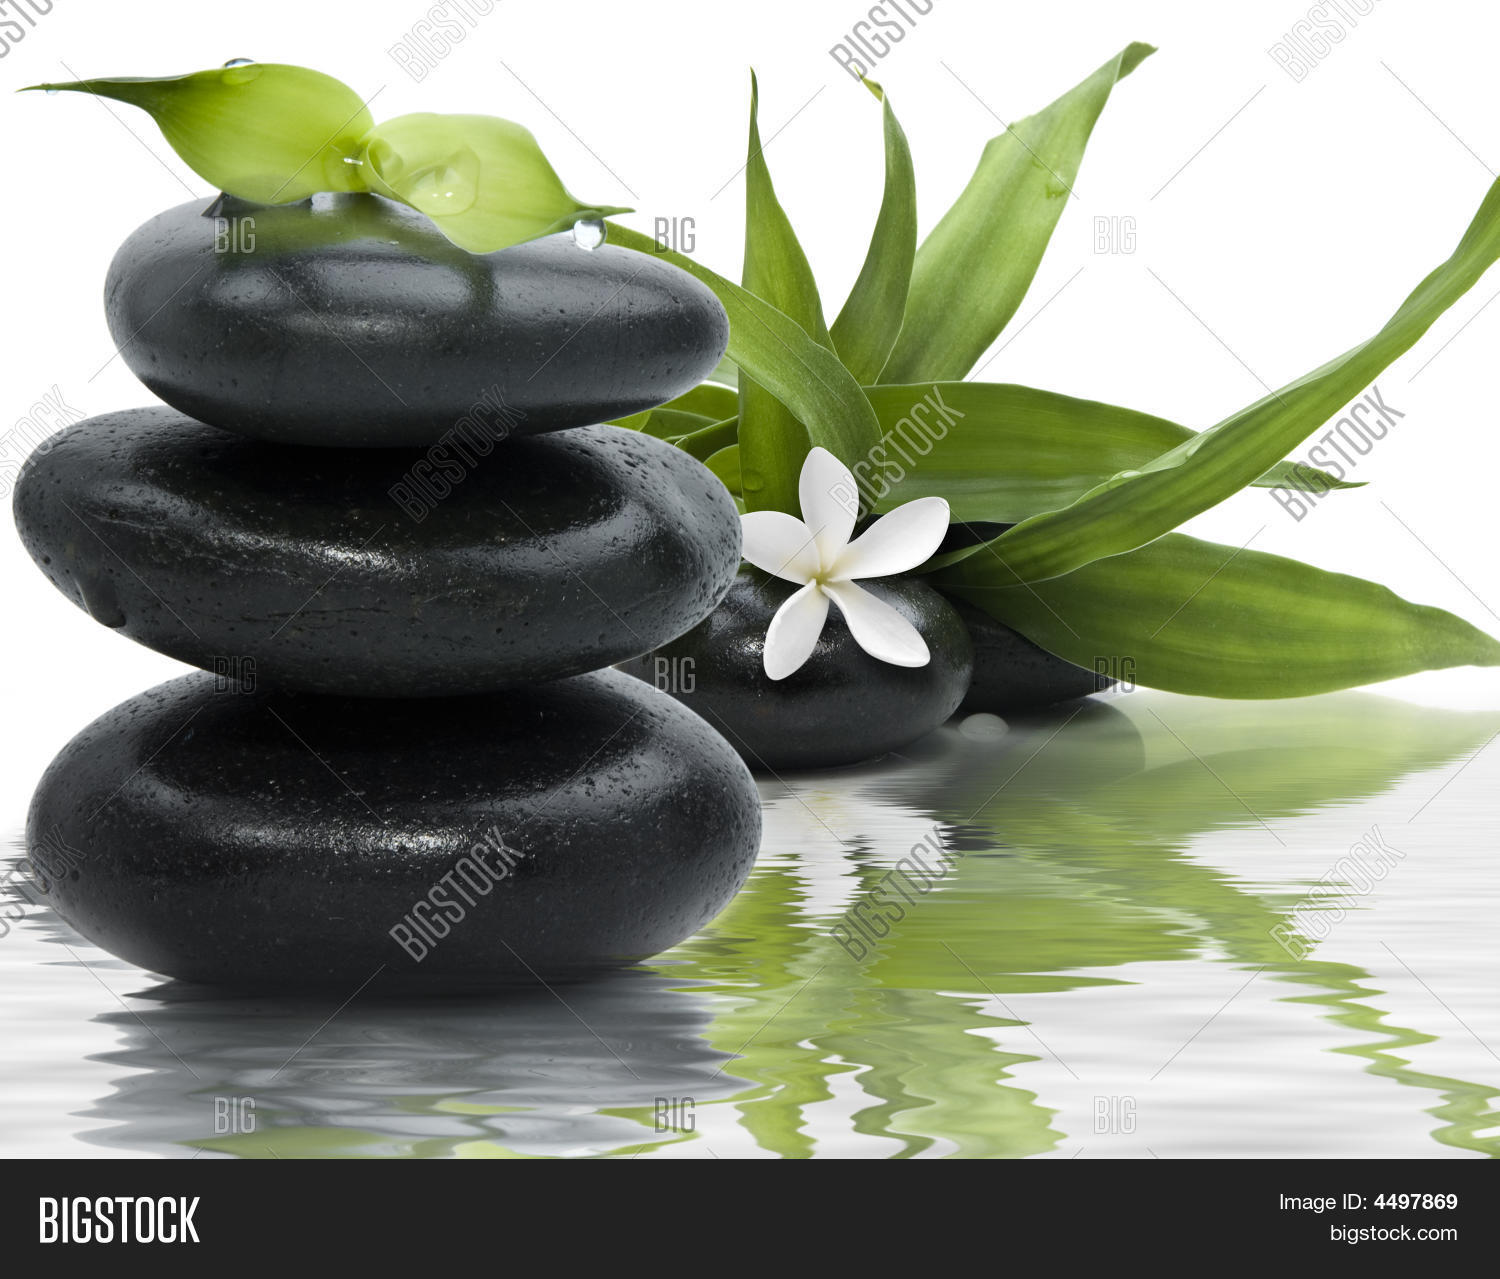 Spa Still Life With Black Stones And Bamboo Leafs In The Water 4497869 Image Stock Photo